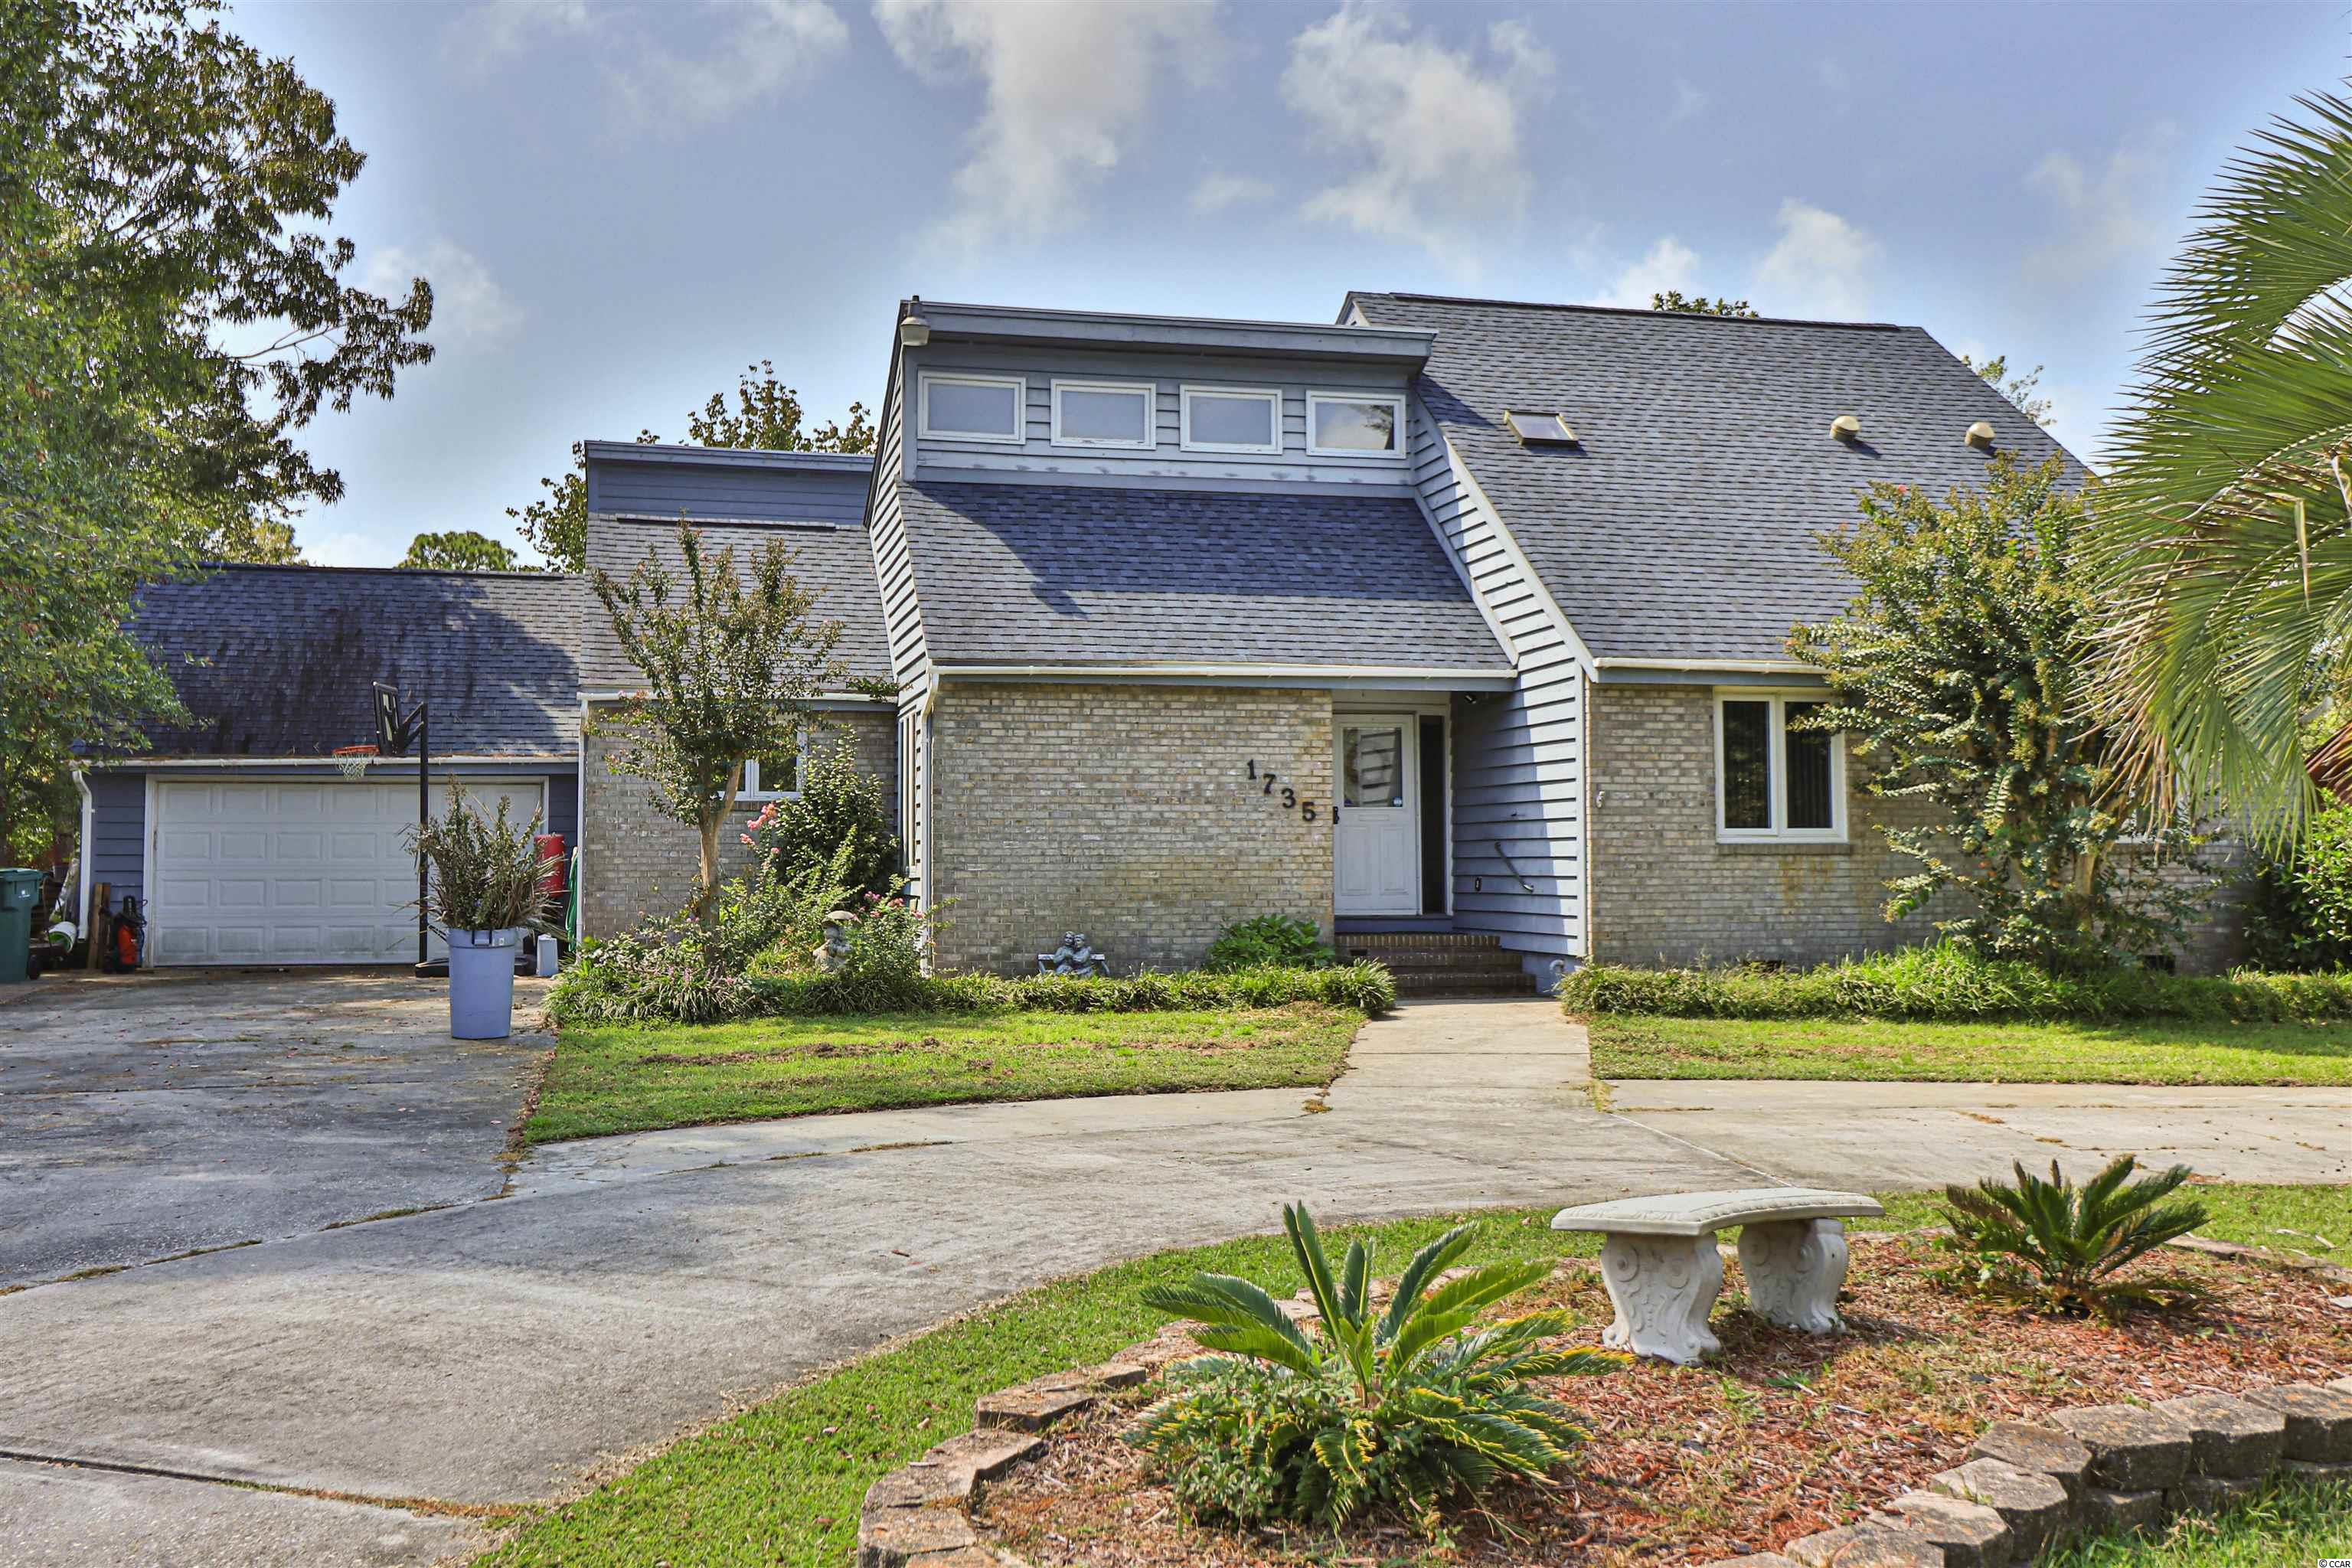 Don't miss out on this incredible opportunity! This beautiful 4 bedroom, 3.5 bathroom family home located in the wonderful neighborhood Deerfield Plantation features a bright and spacious floor plan! The vaulted living room features beautiful wood beams and a gorgeous brick fireplace plus a formal dining room! The newly renovated kitchen features lovely white cabinetry, custom backsplash, plenty of counter space, stainless steel appliances, a double oven, a pantry, and a large breakfast nook! The comfortable master suite boasts access to a private balcony, a large walk-in closet, and an impressive master bathroom! This amazing home also features a stunning Carolina room lined with wall to wall windows! You will enjoy the spectacular weather and huge backyard perfect for grilling out and entertaining! Being in such a great location, you are only minutes to the beach, The Pier at Garden City, Market Commons, delicious restaurants, shops, and so much more! Book your showing today!